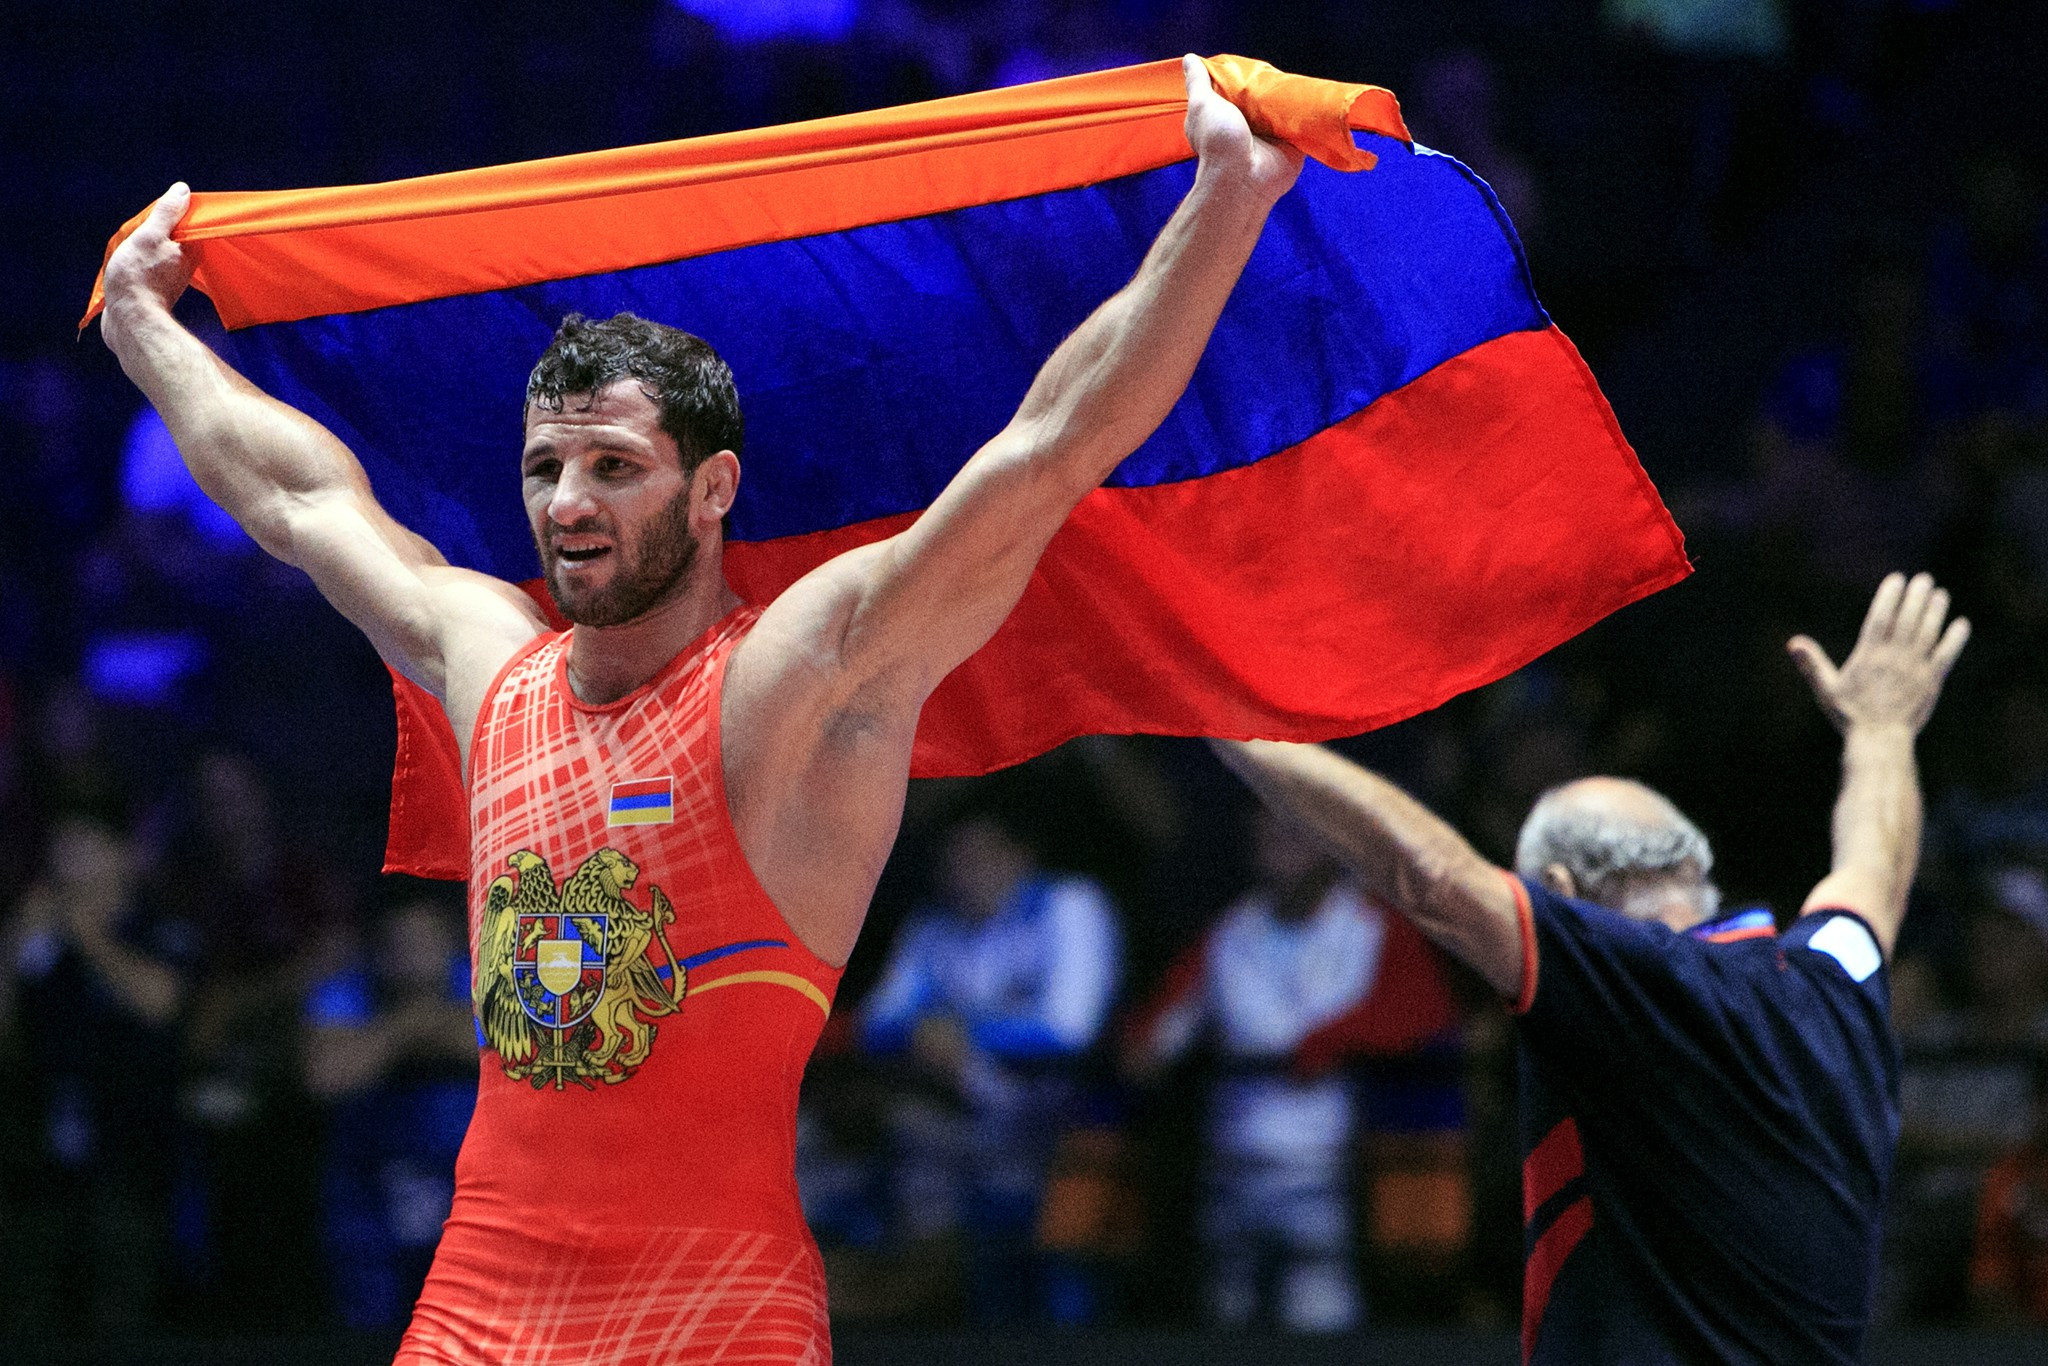 Manukyan's triumph handed Armenia their second gold medal of the Championships ©UWW